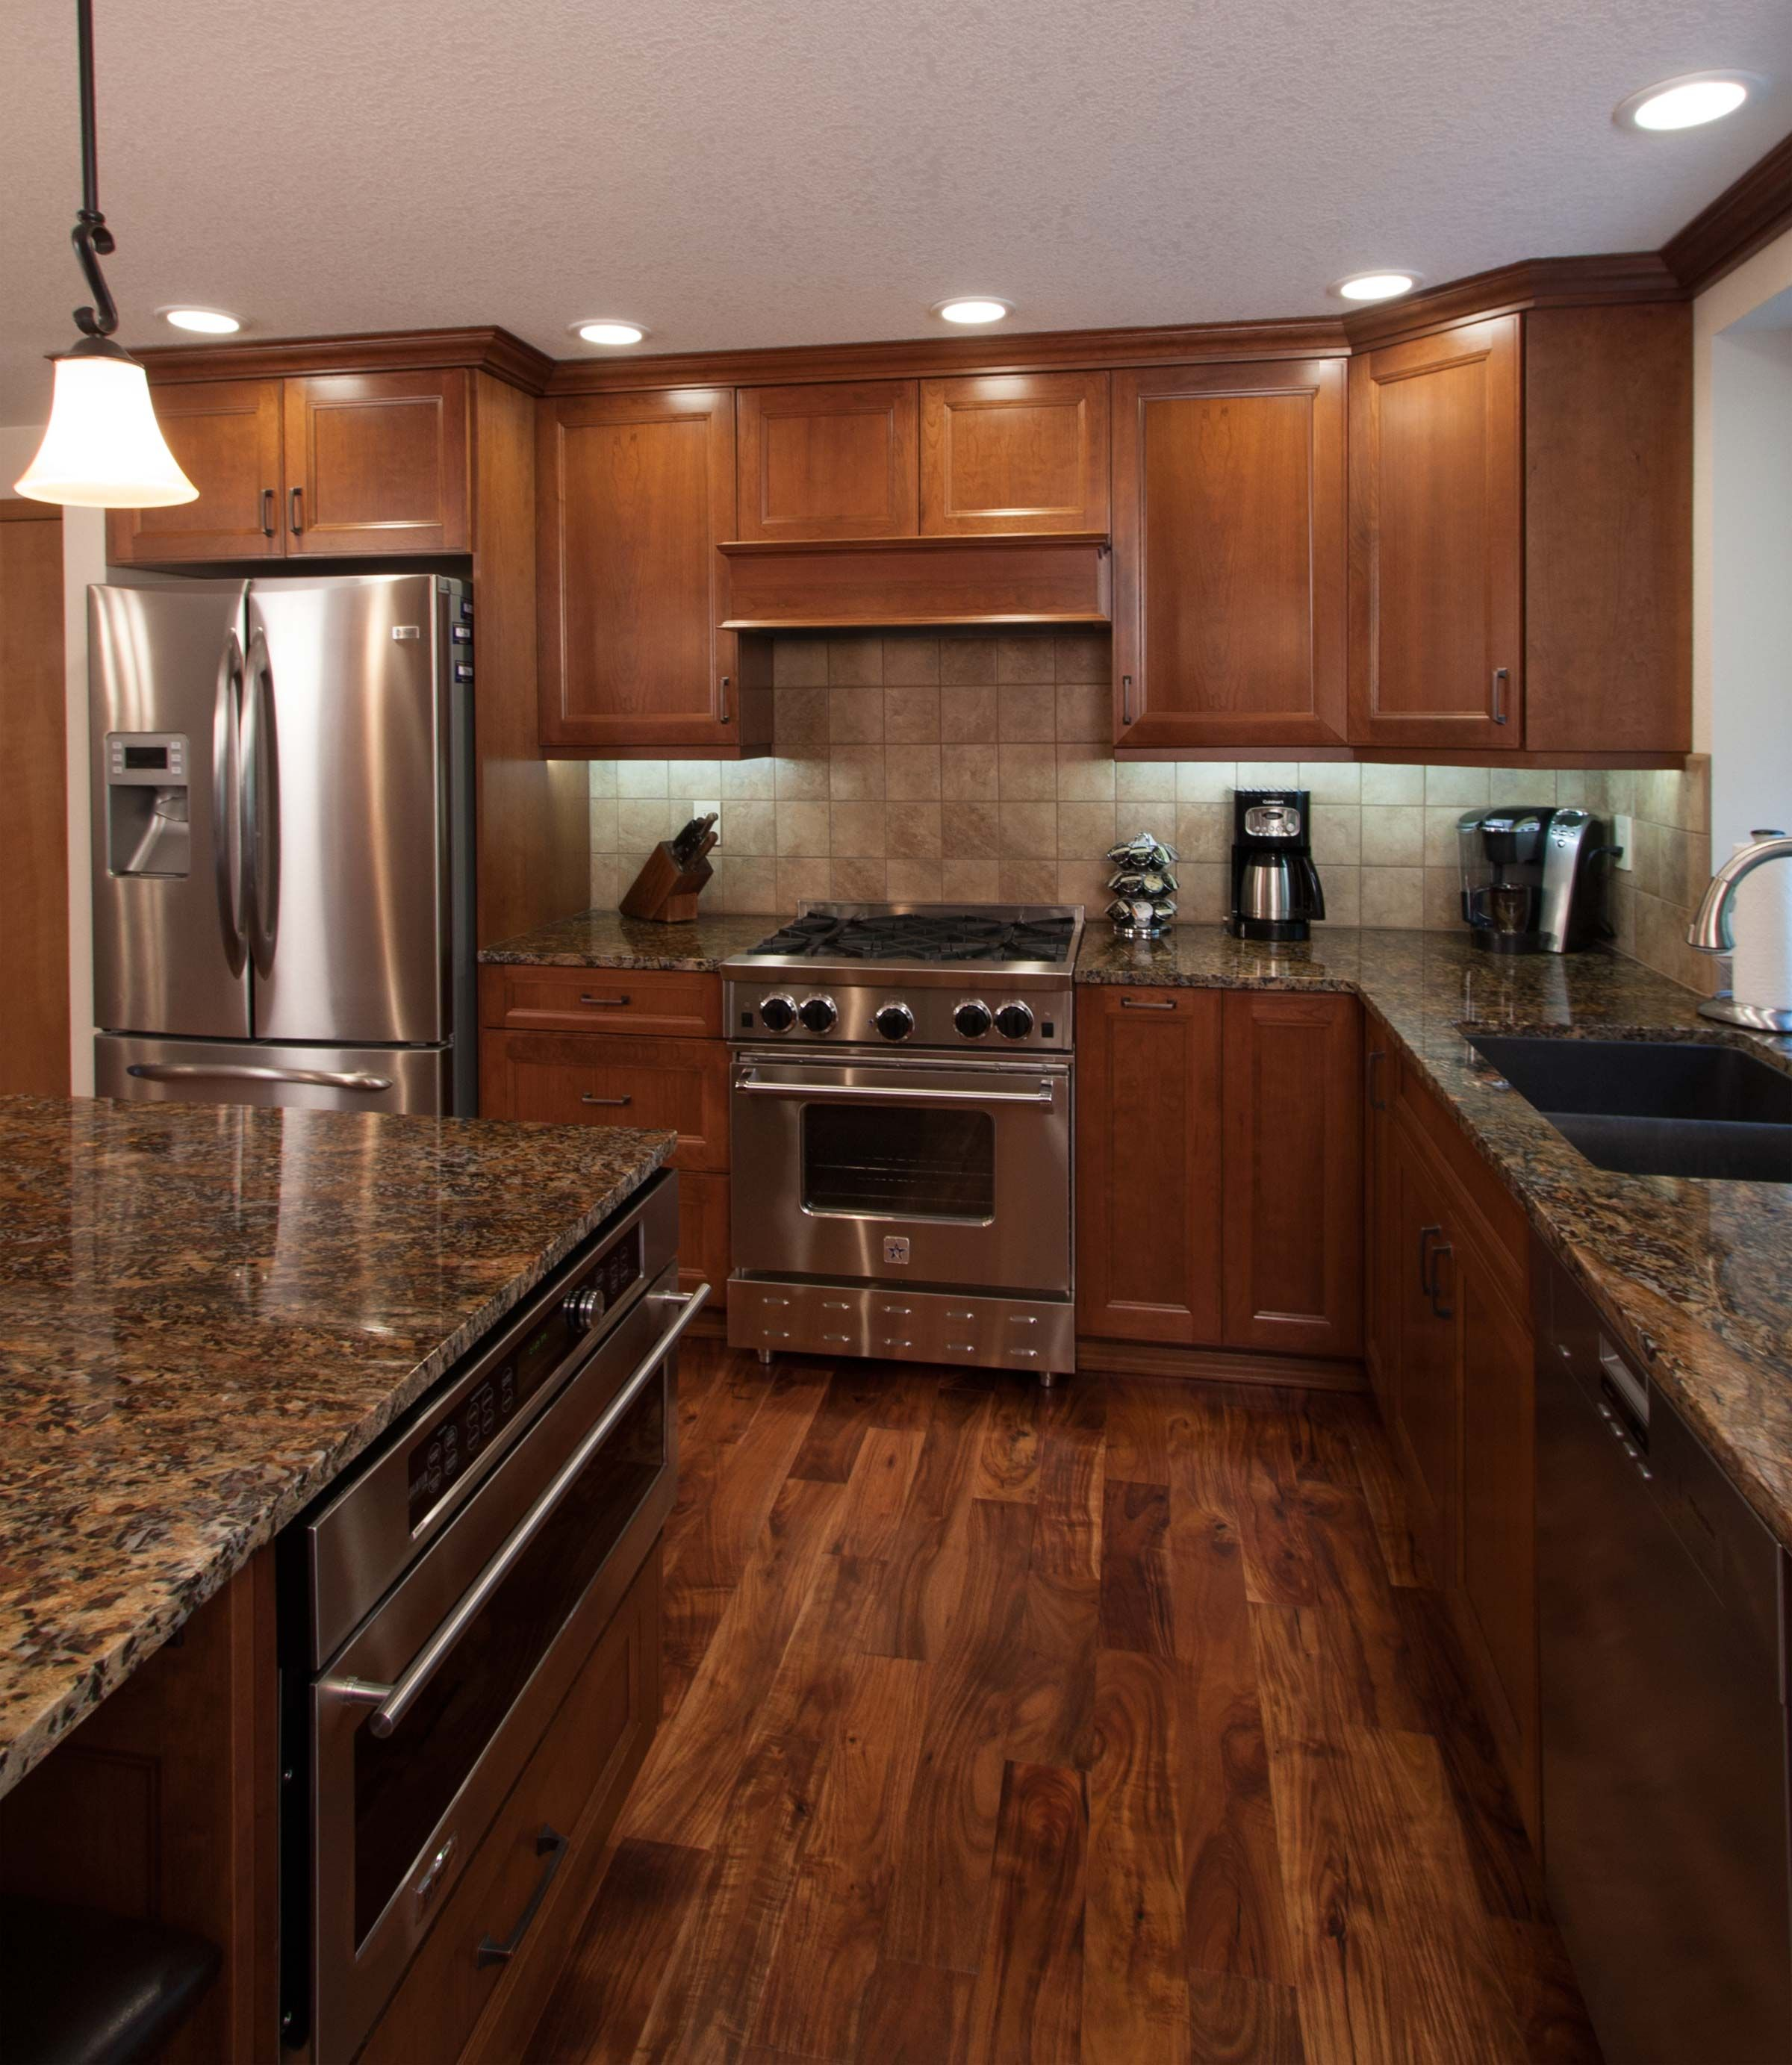 Kitchen Nice Wood Kitchen Cabinets With Floors Wonderful Looking Within Proportions Kitchen Flooring Trends Hardwood Floors In Kitchen Cherry Cabinets Kitchen